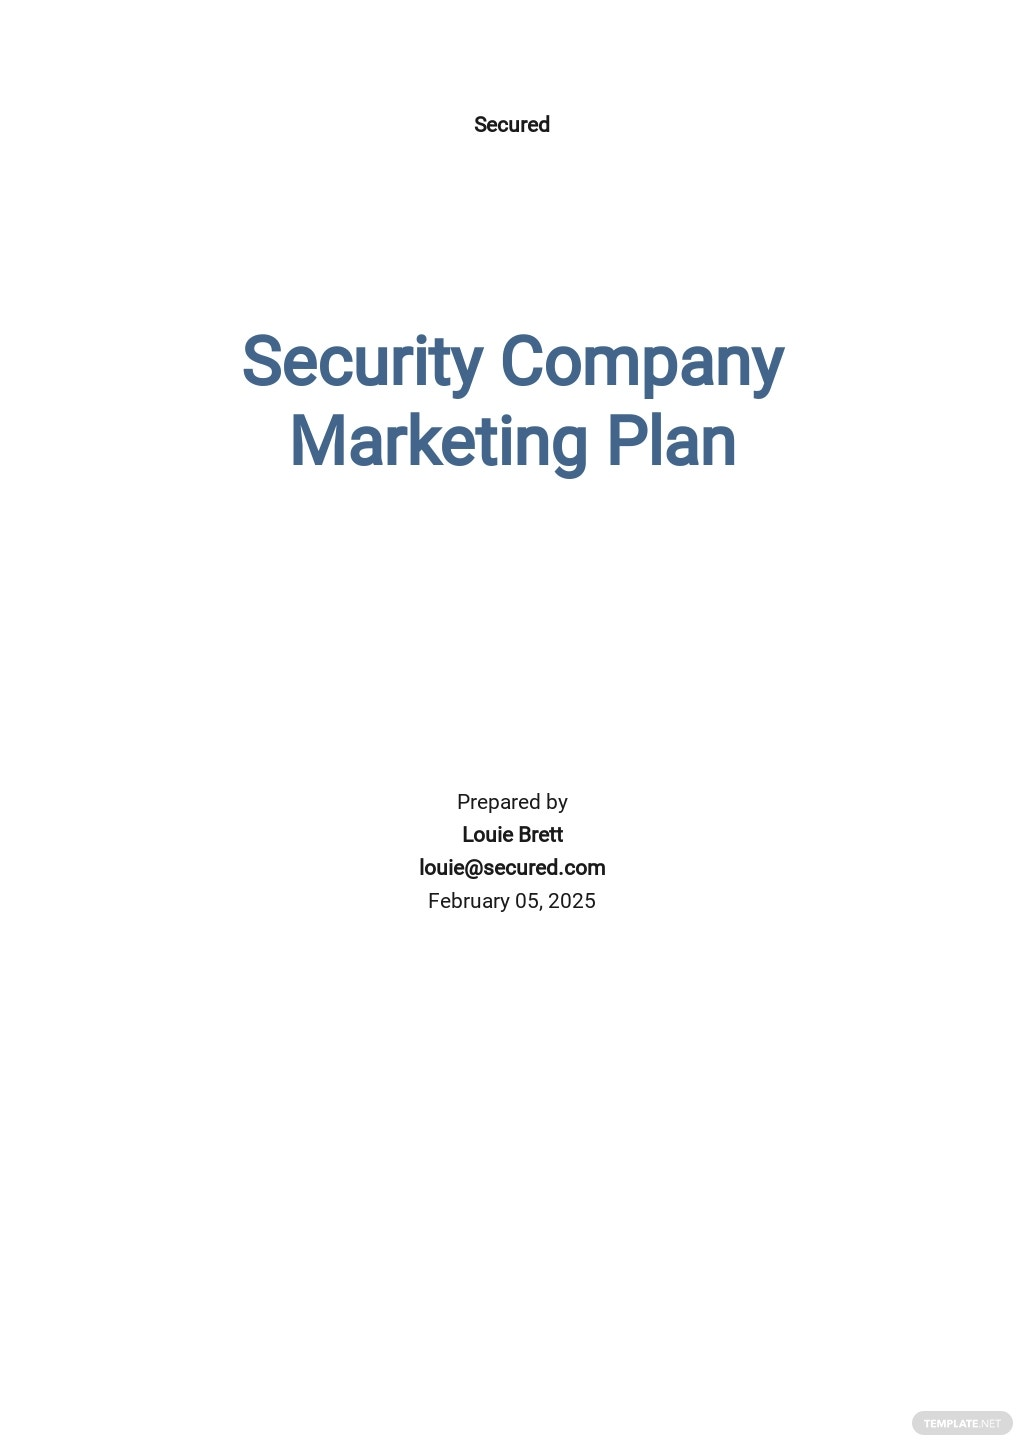 Security Company Marketing Plan Template [Free PDF] - Google Docs, Word, Apple Pages